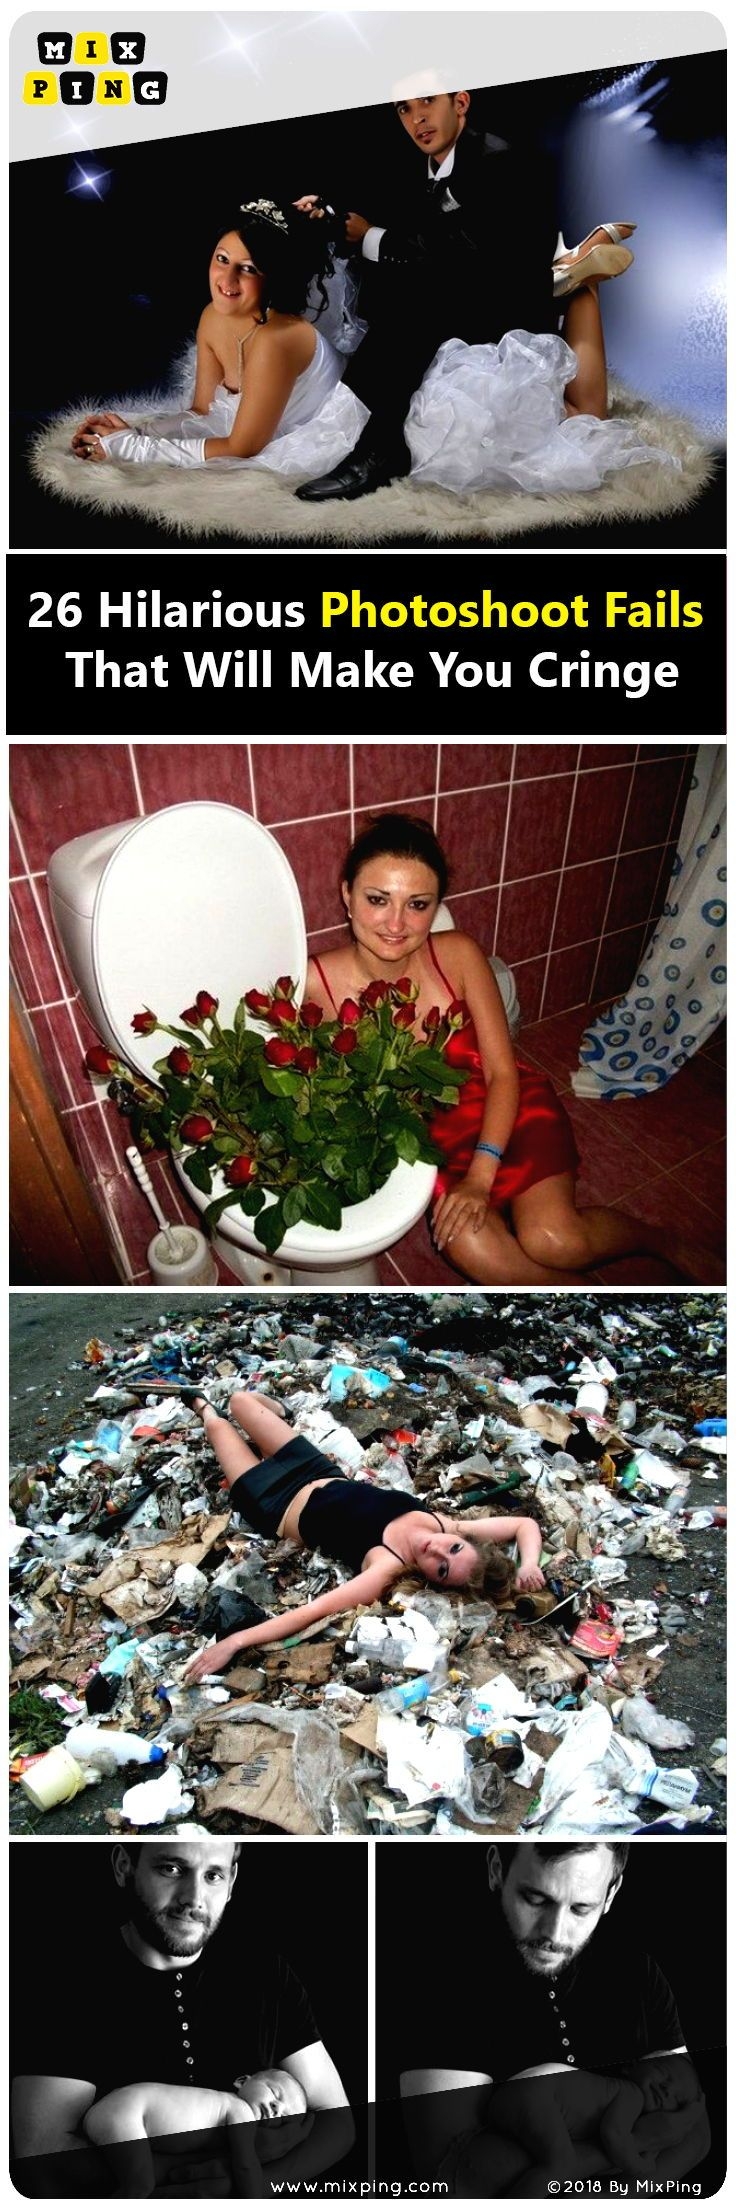 #Photoshoot #Fails That Will Make You Think Before Going ...